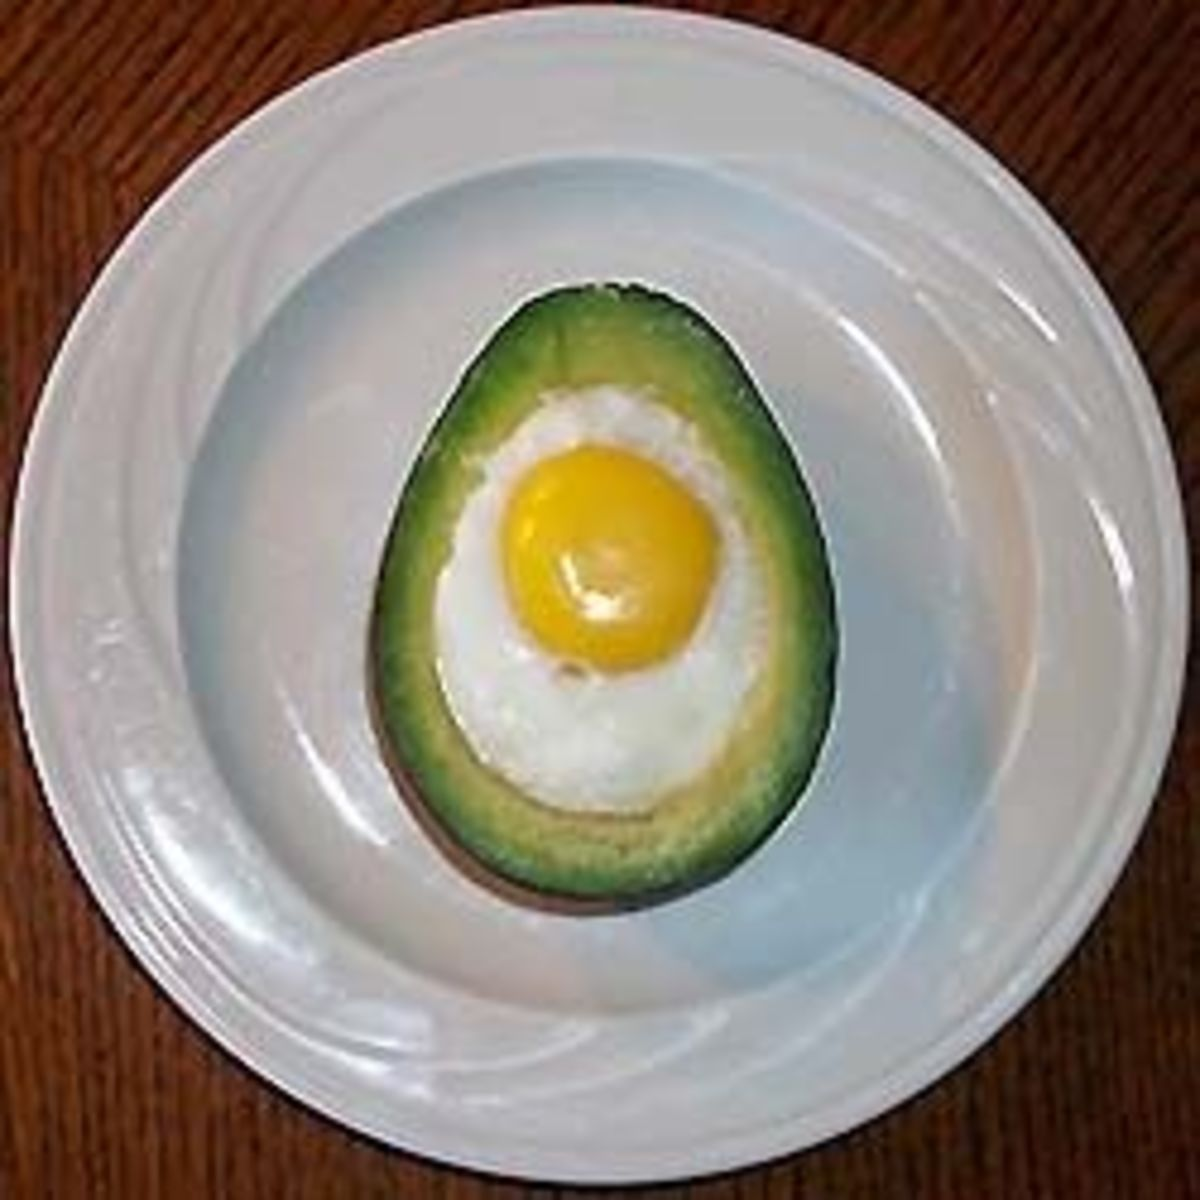 Even plated simply, this eggvocado did not last long.